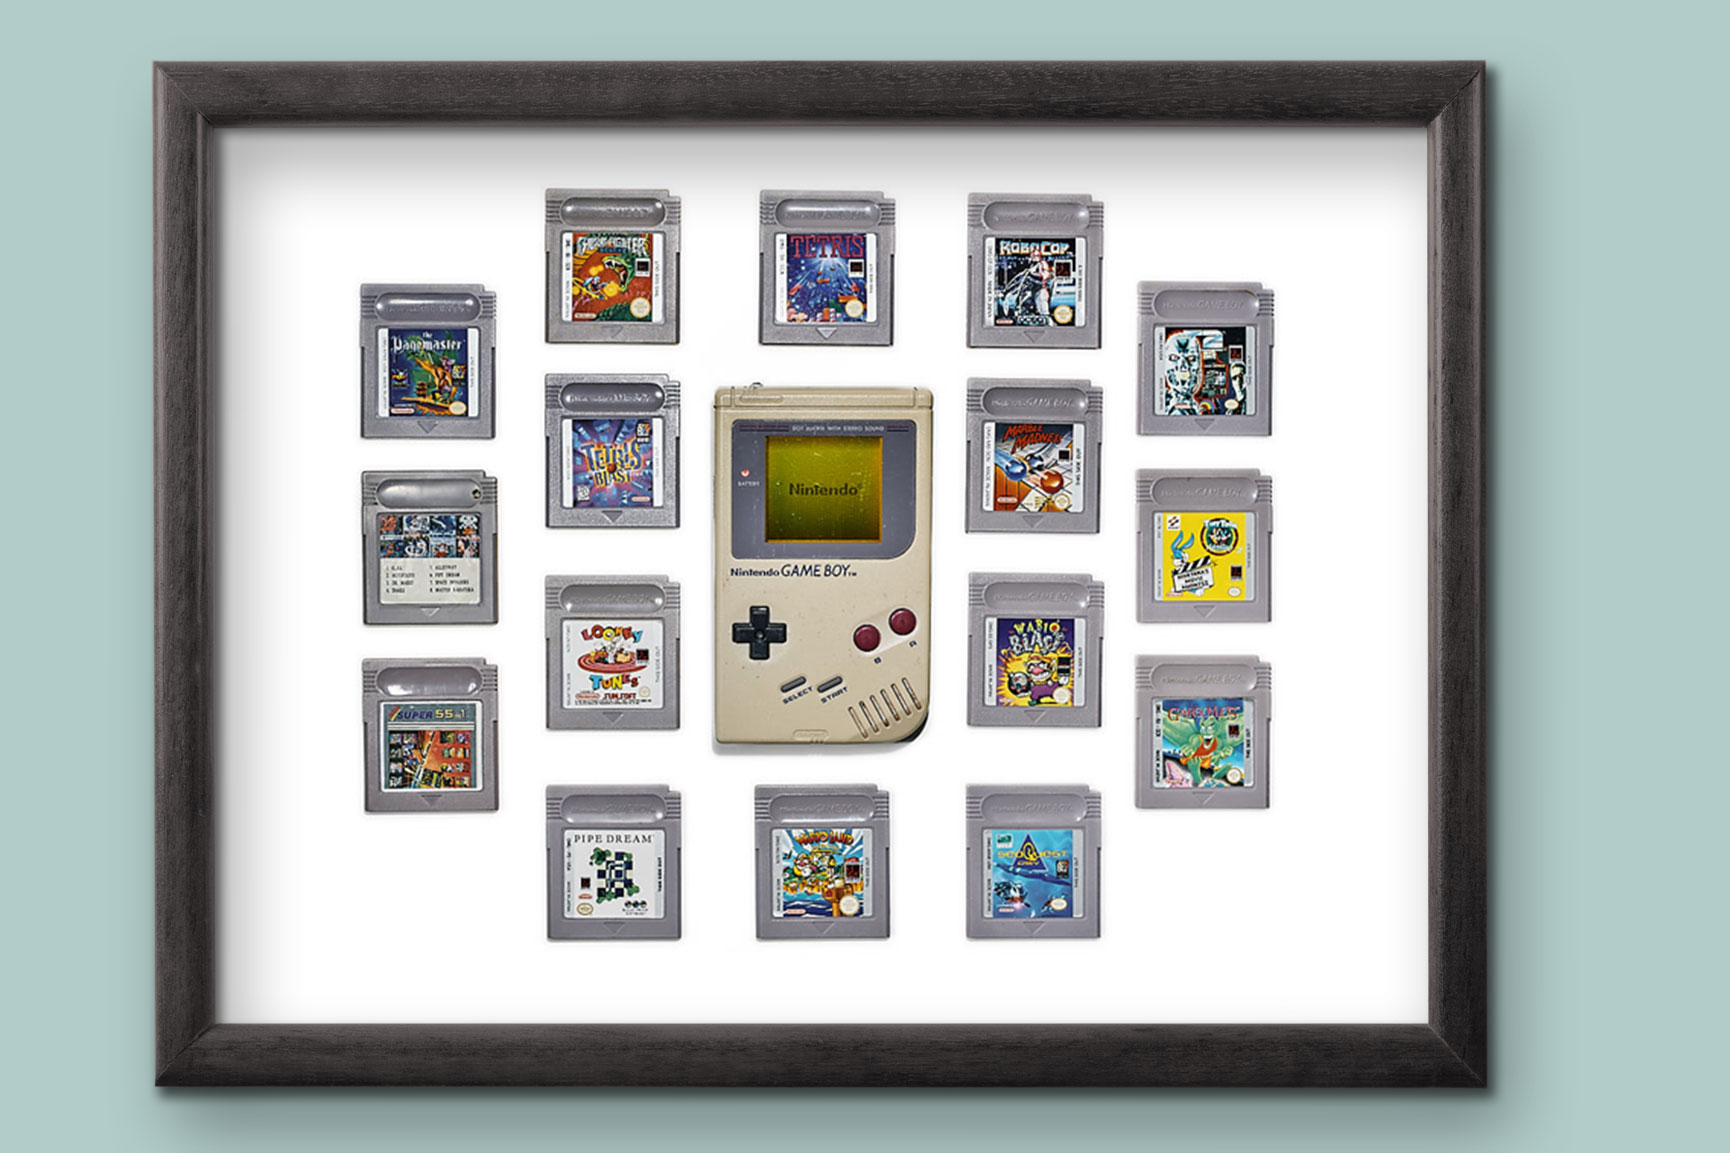 frame_gameboy.jpg